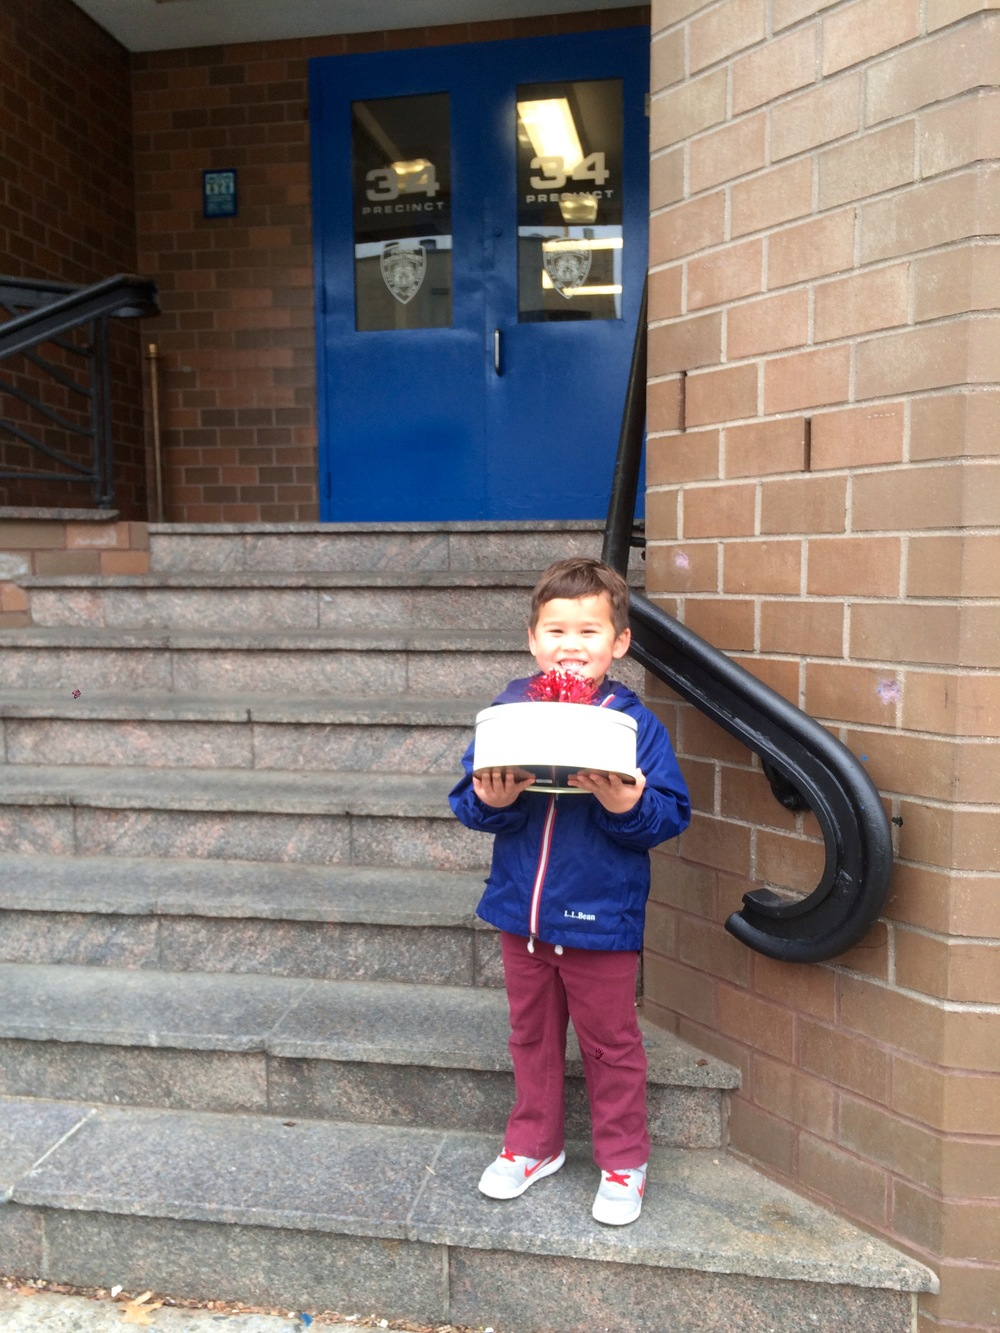 Taking homemade cookies to our local police precinct. They were so grateful and then gave the kids a tour of the police station and police cars/van!